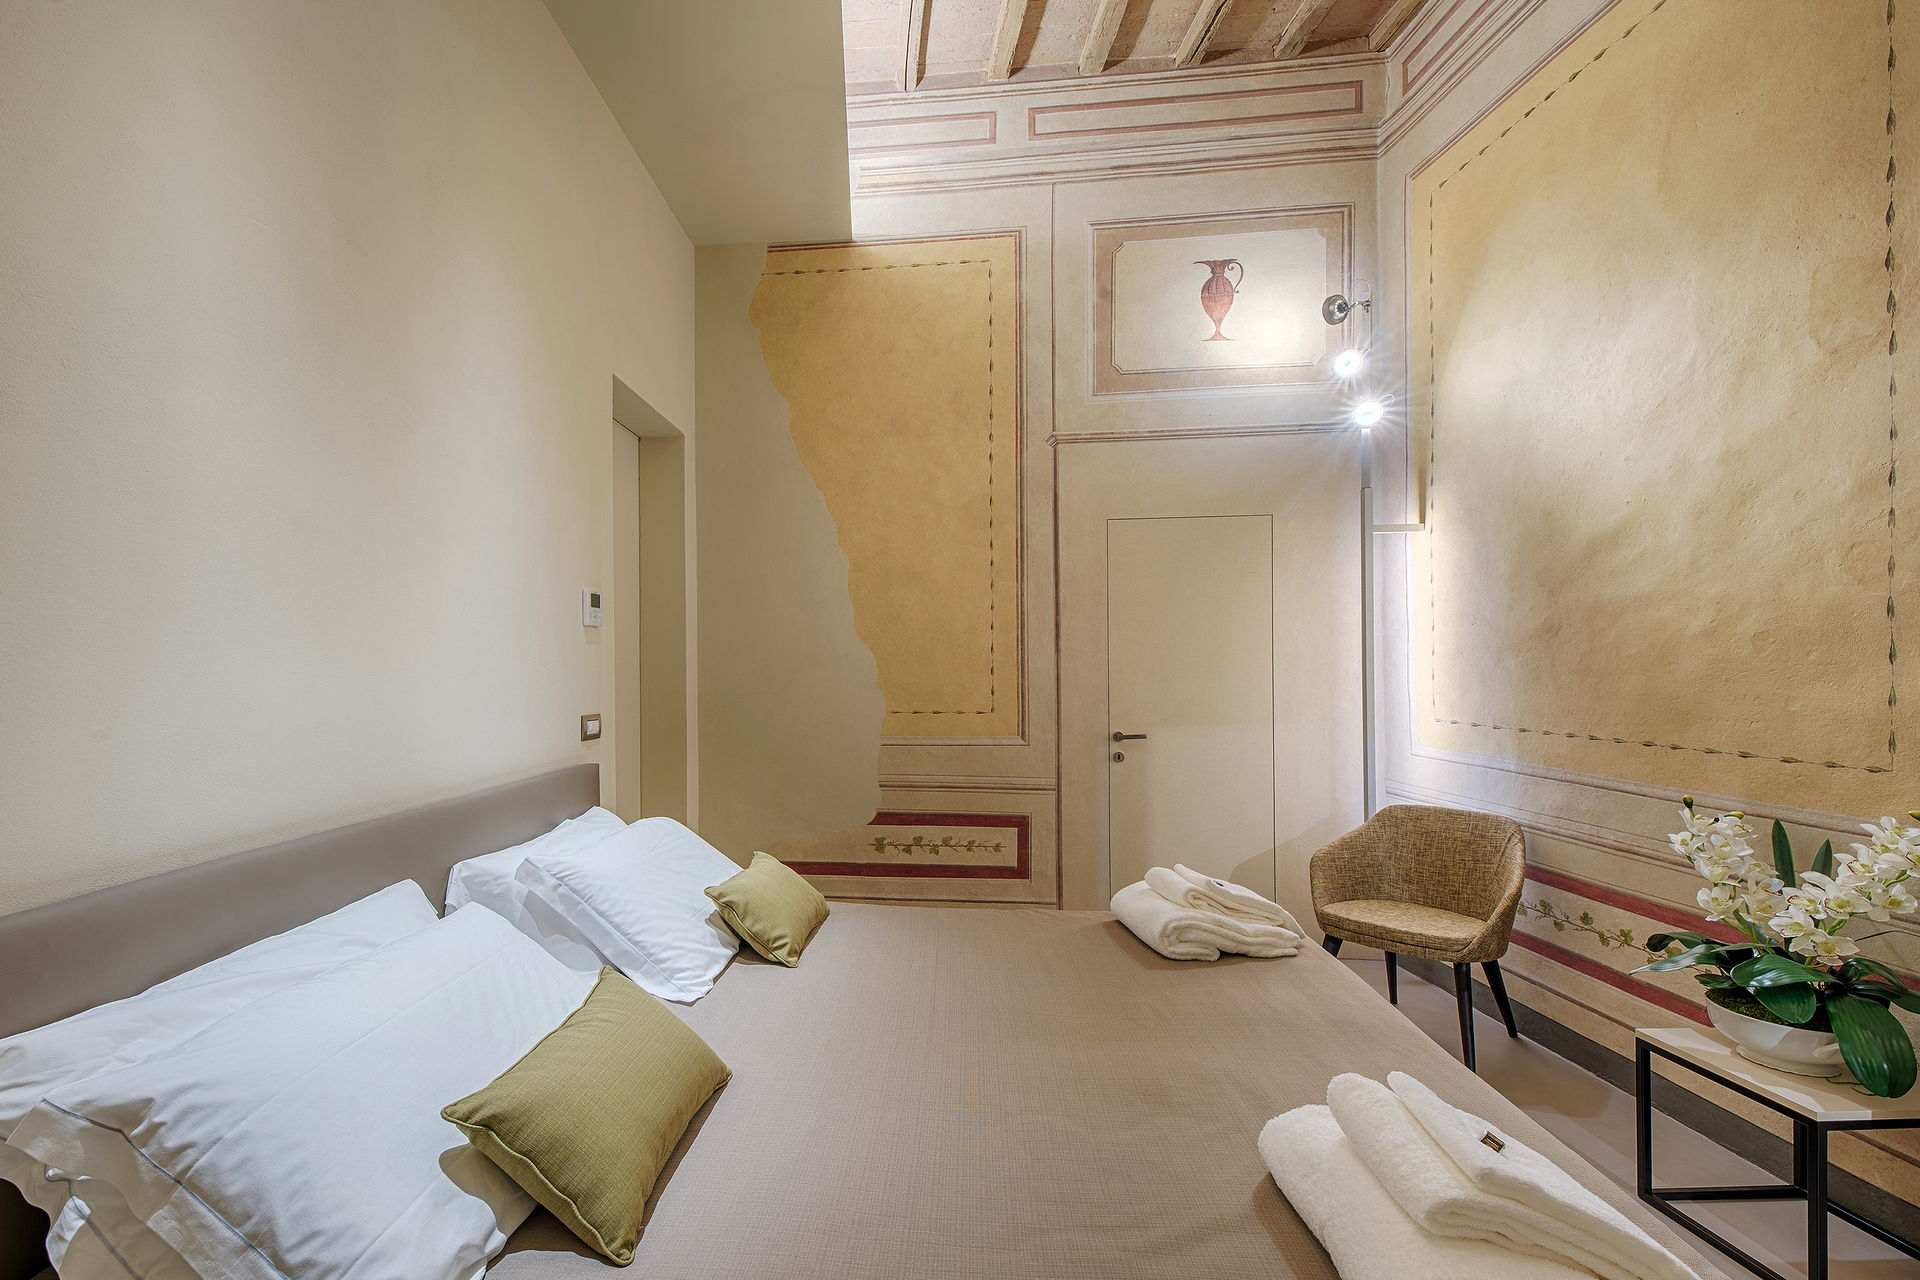 Residenza d'epoca Le Aquile - Bed and Breakfast luxury nel centro di Siena - le anfore 2